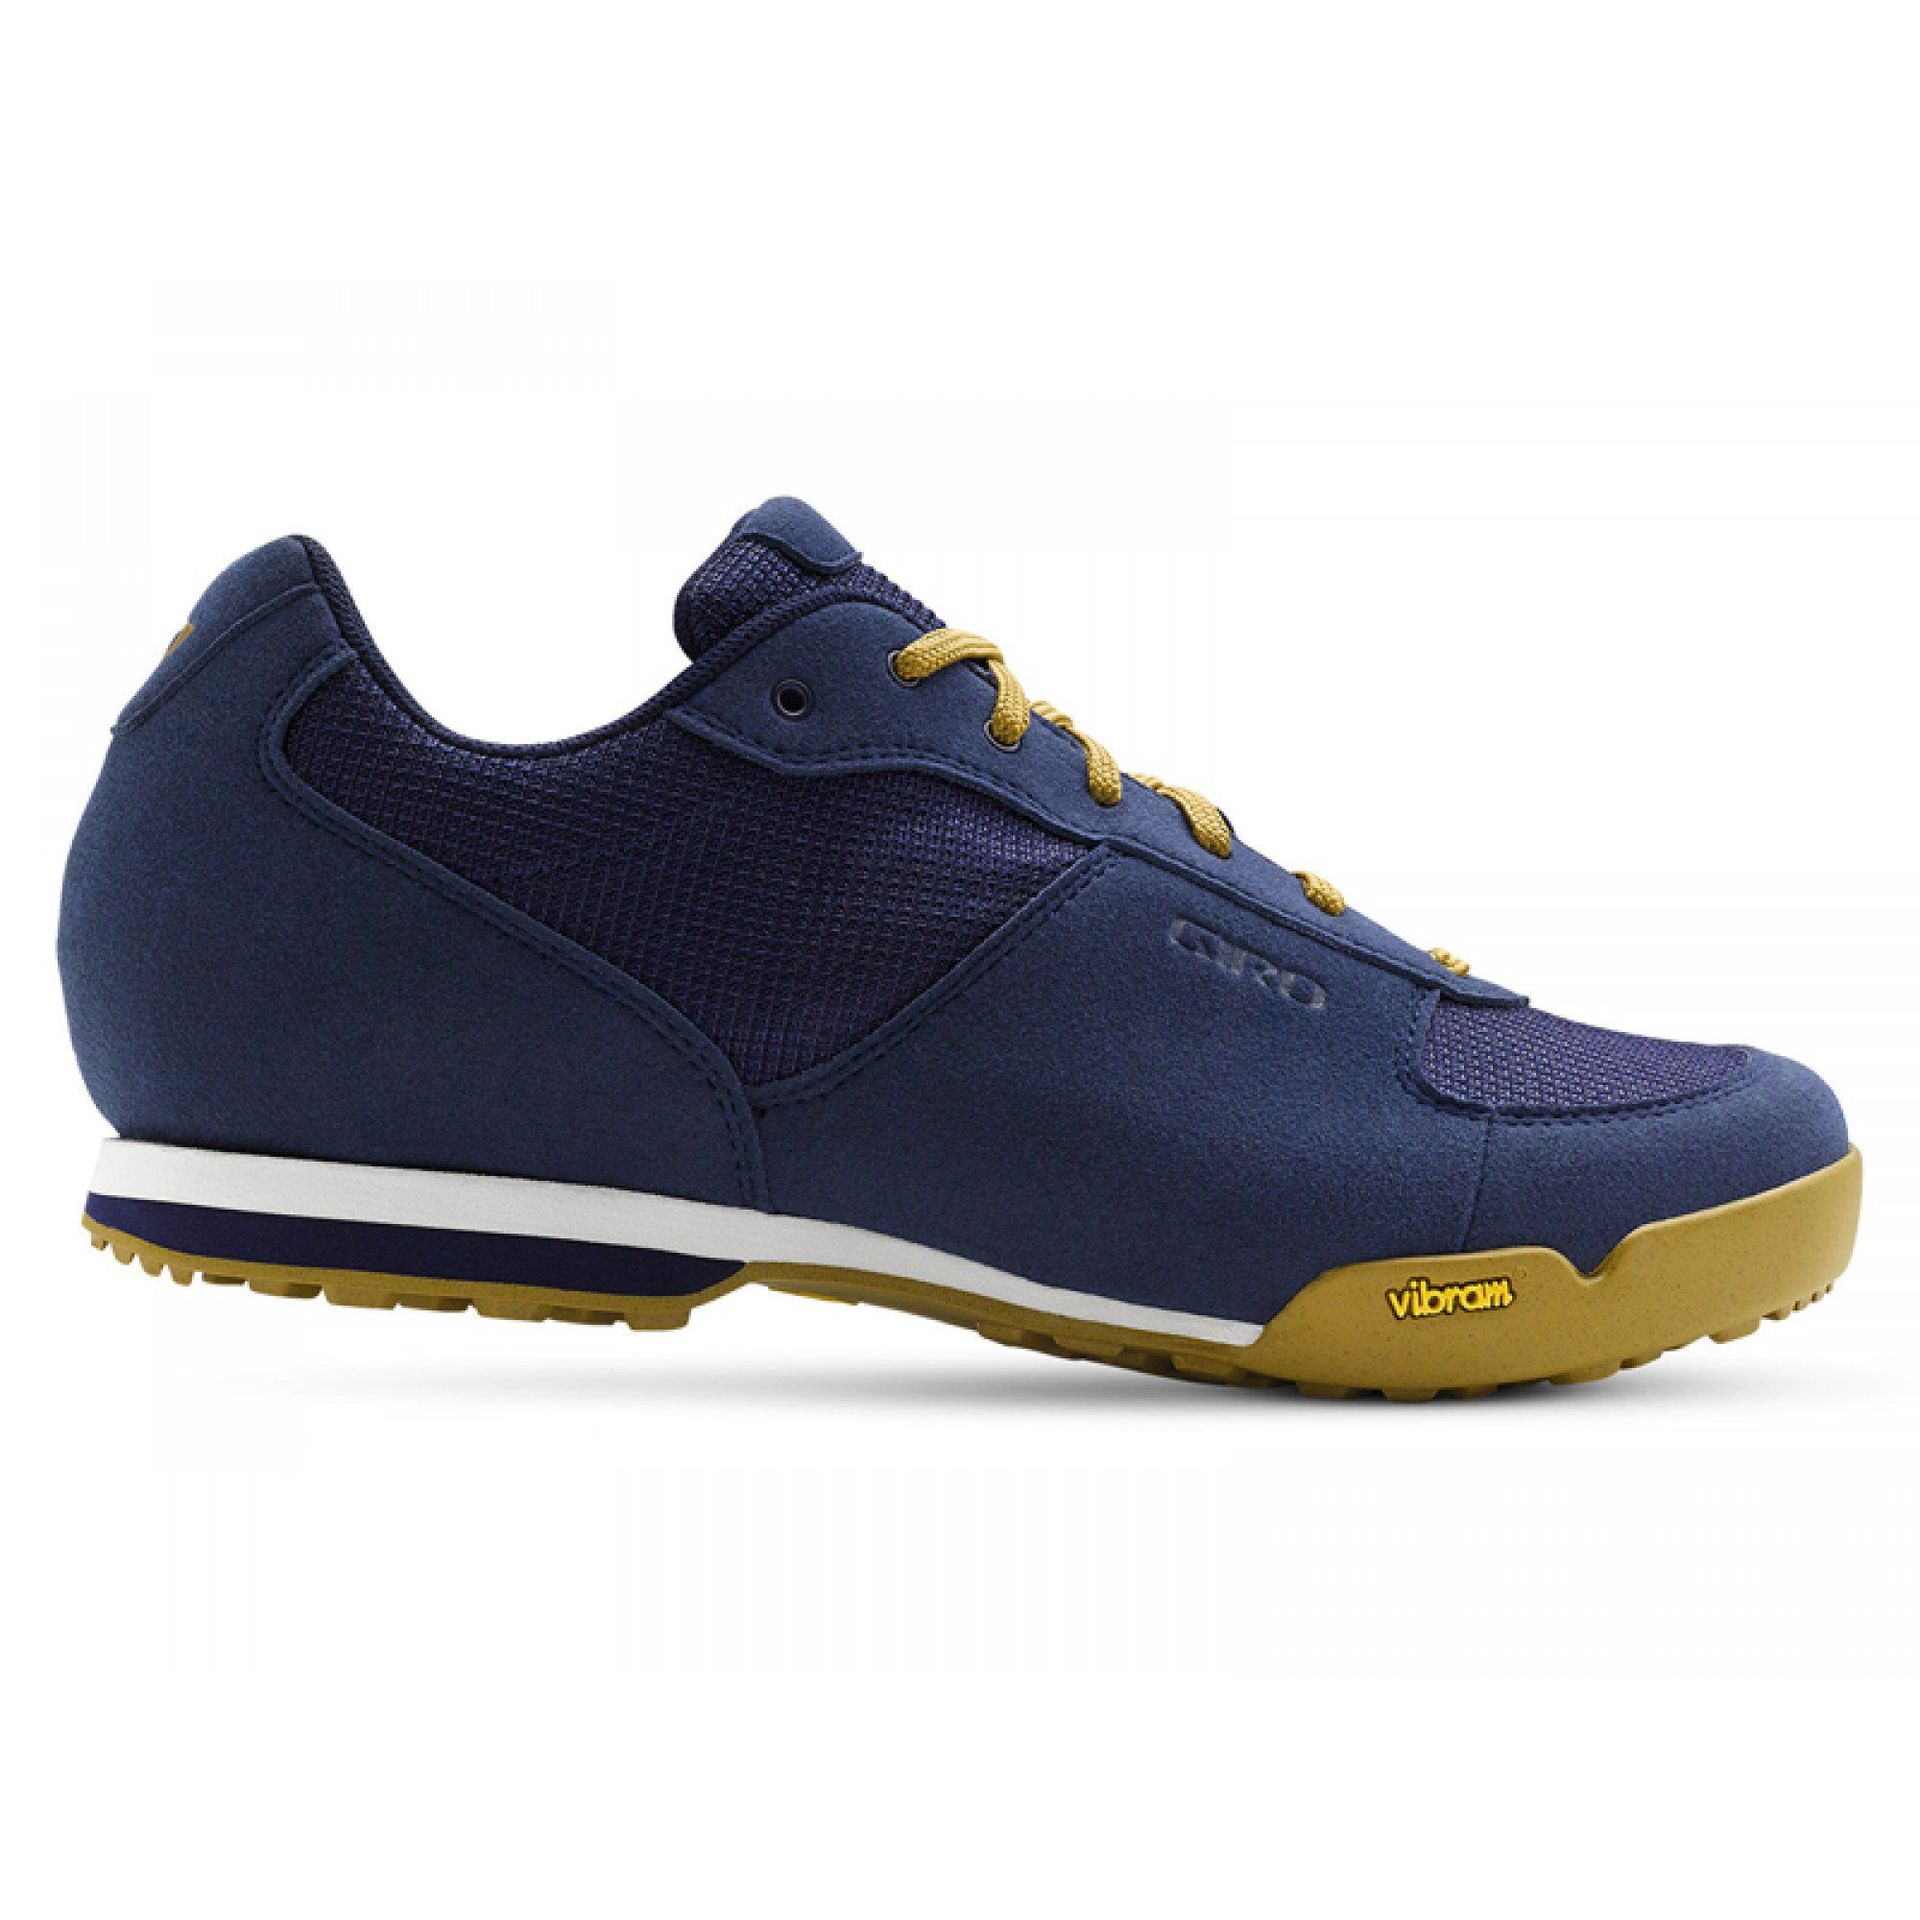 BUTY ROWEROWE GIRO RUMBLE VR DRESS BLUE GUM 1